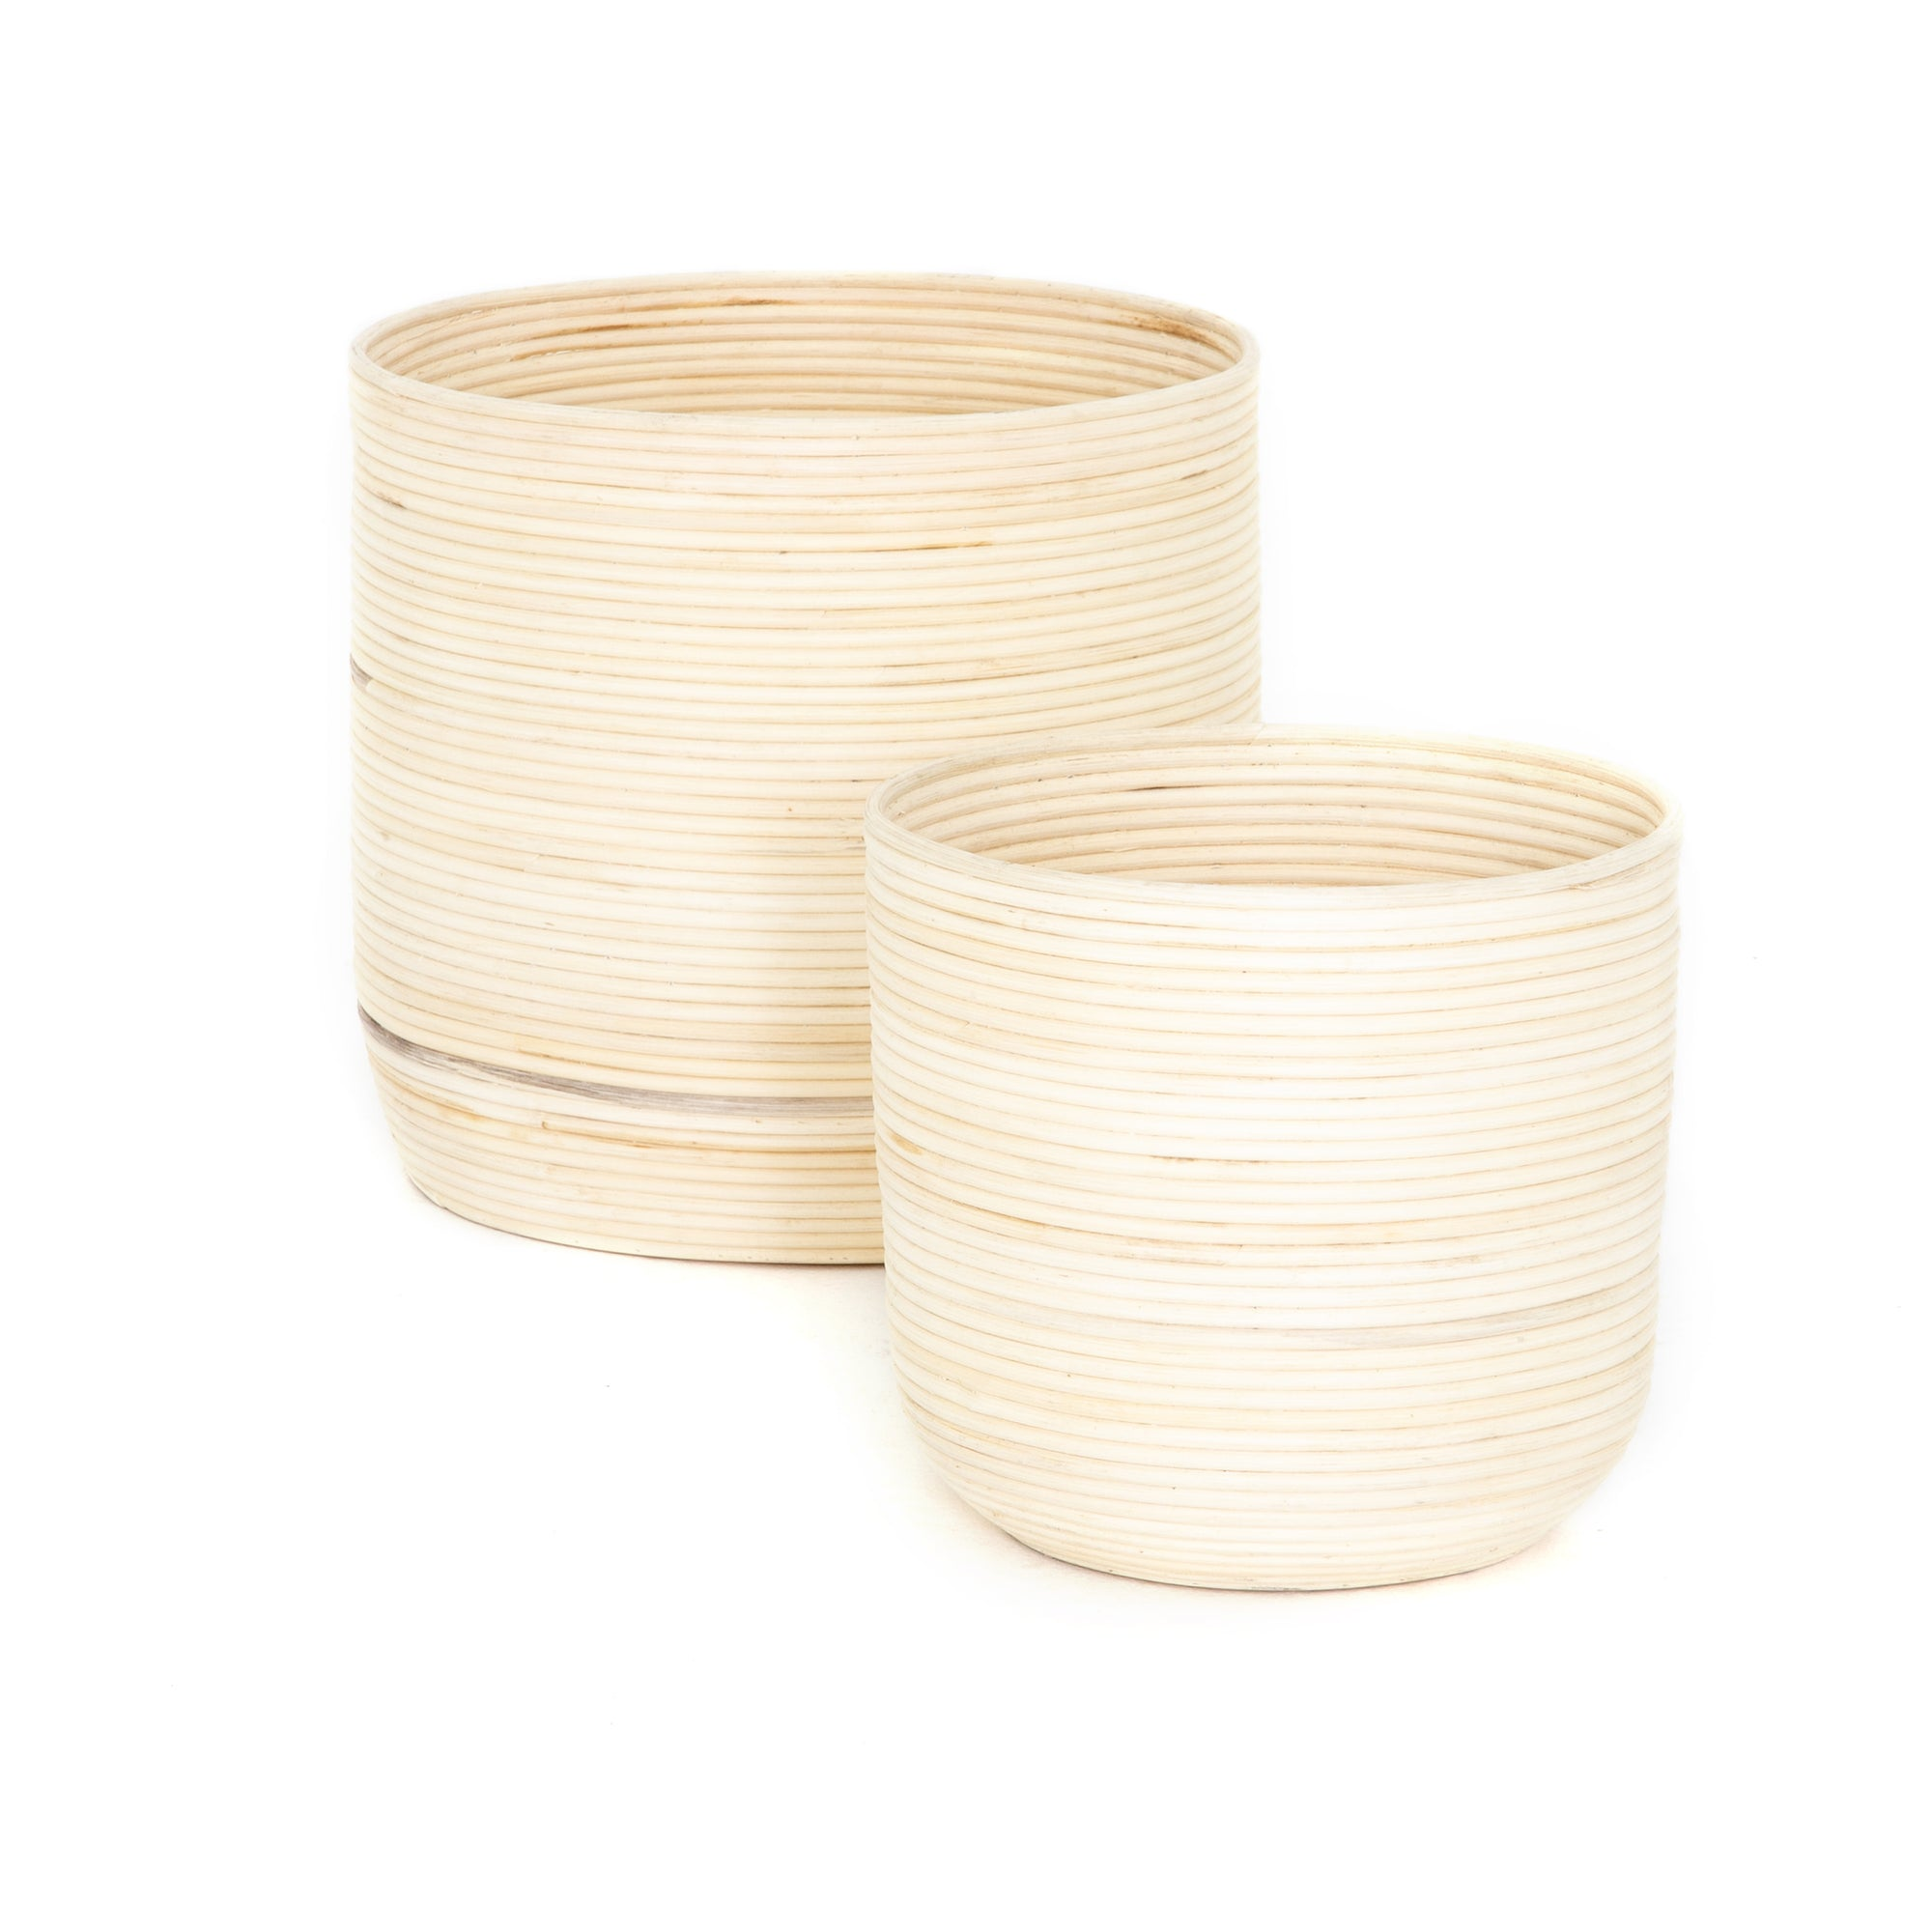 Feye Natural Baskets (set of 2)